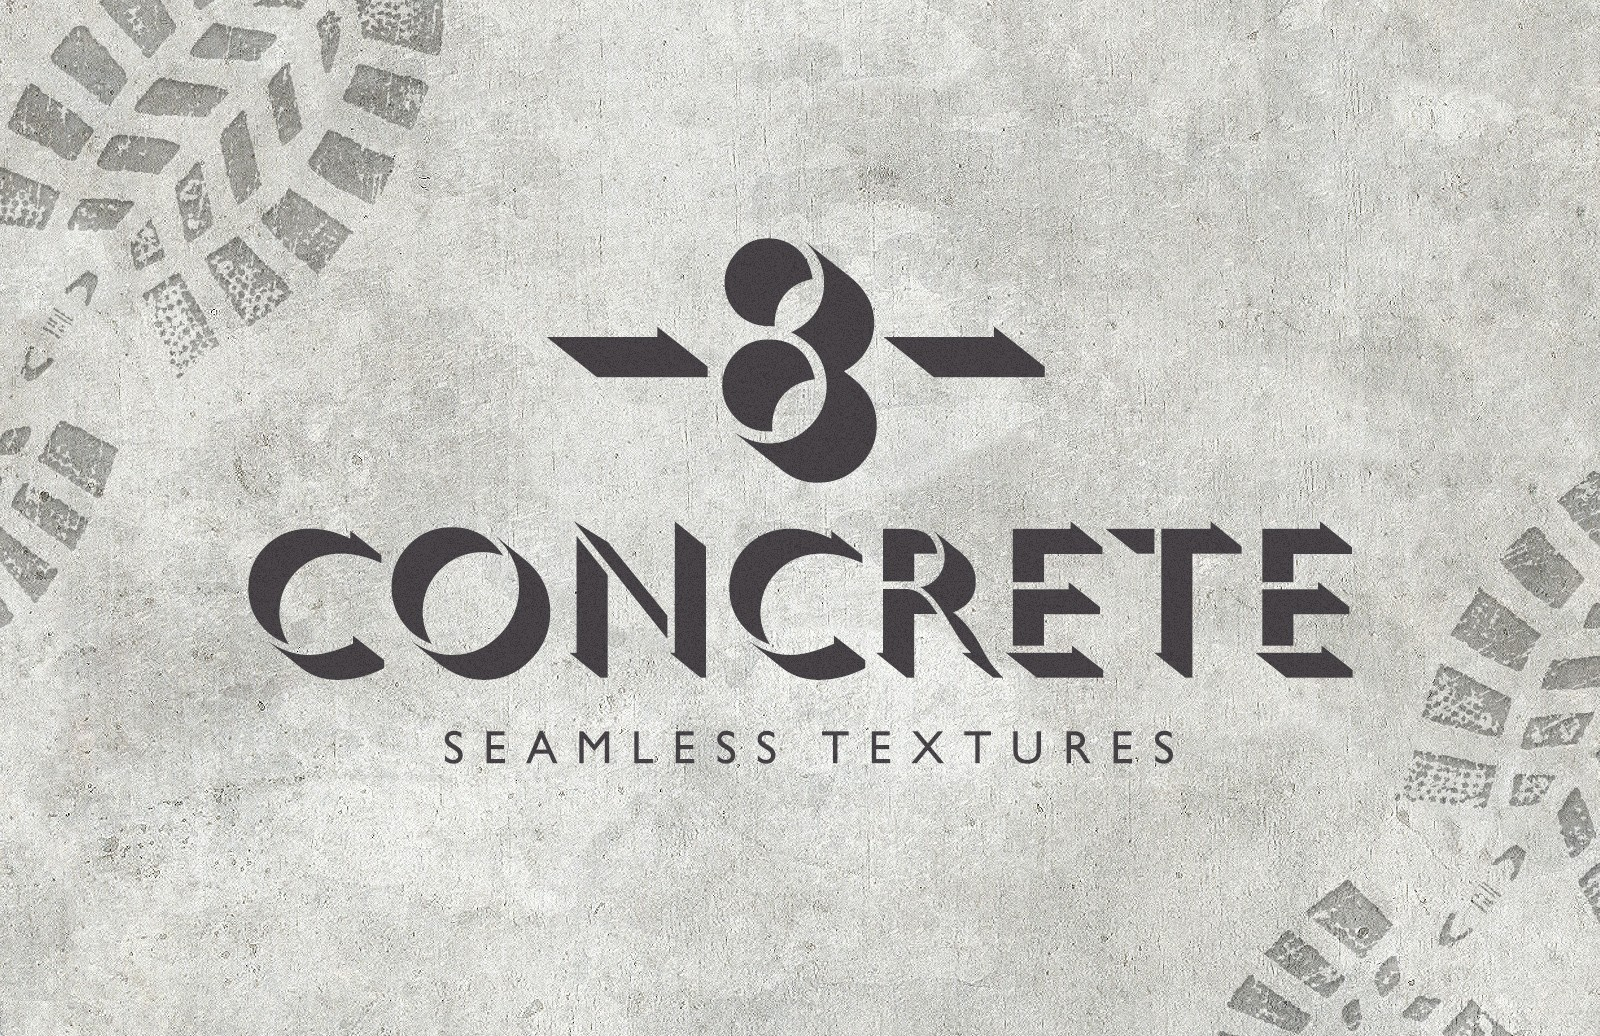 Large Seamless  Concrete  Textures  Preview 1A